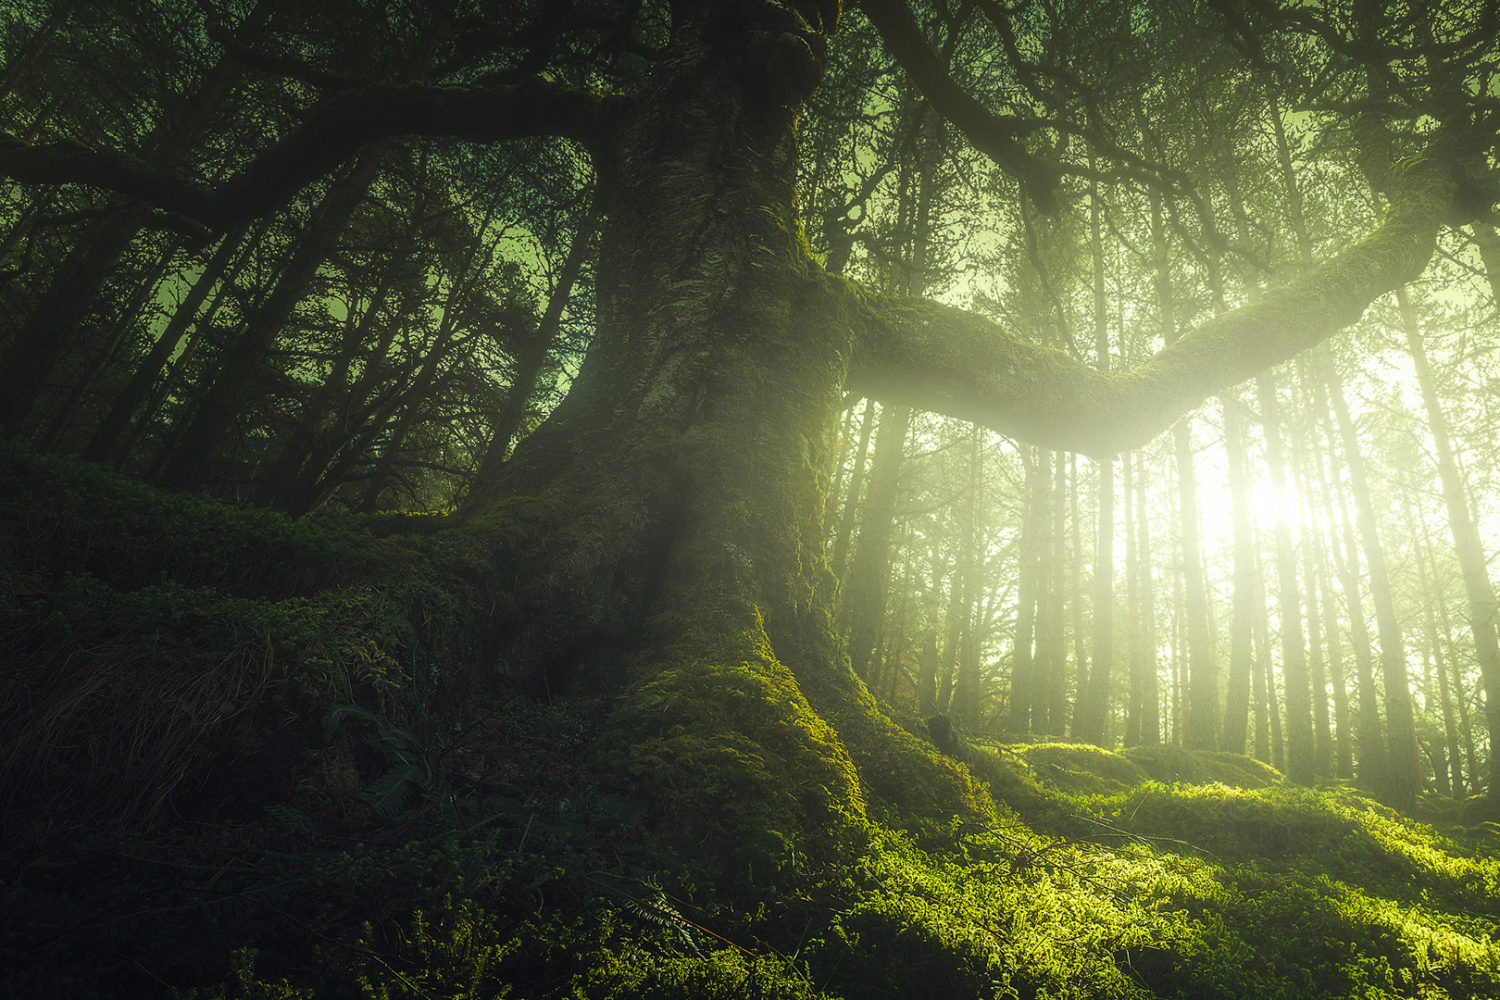 How to capture epic wide-angle photos of trees